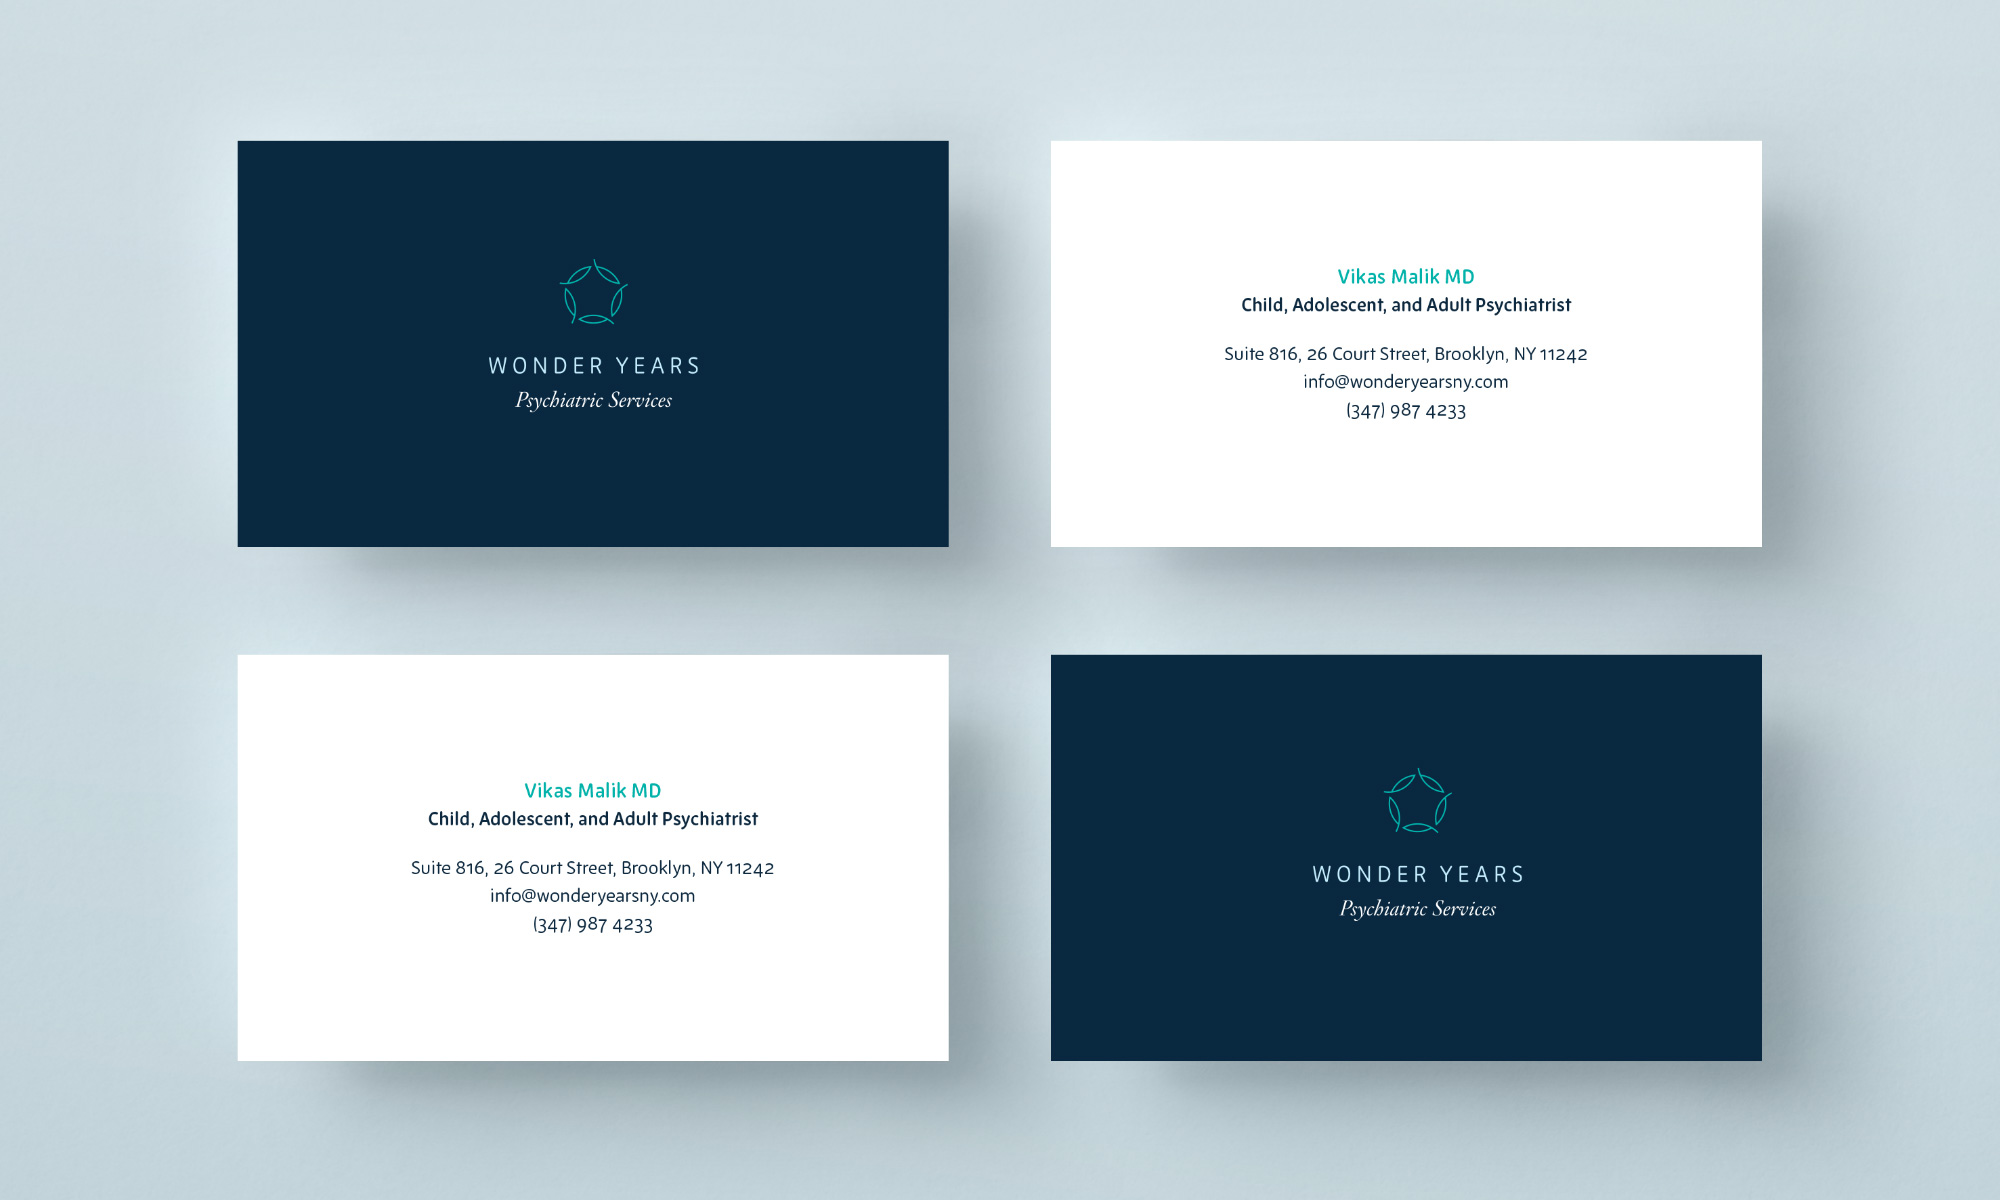 Wonder Years business cards